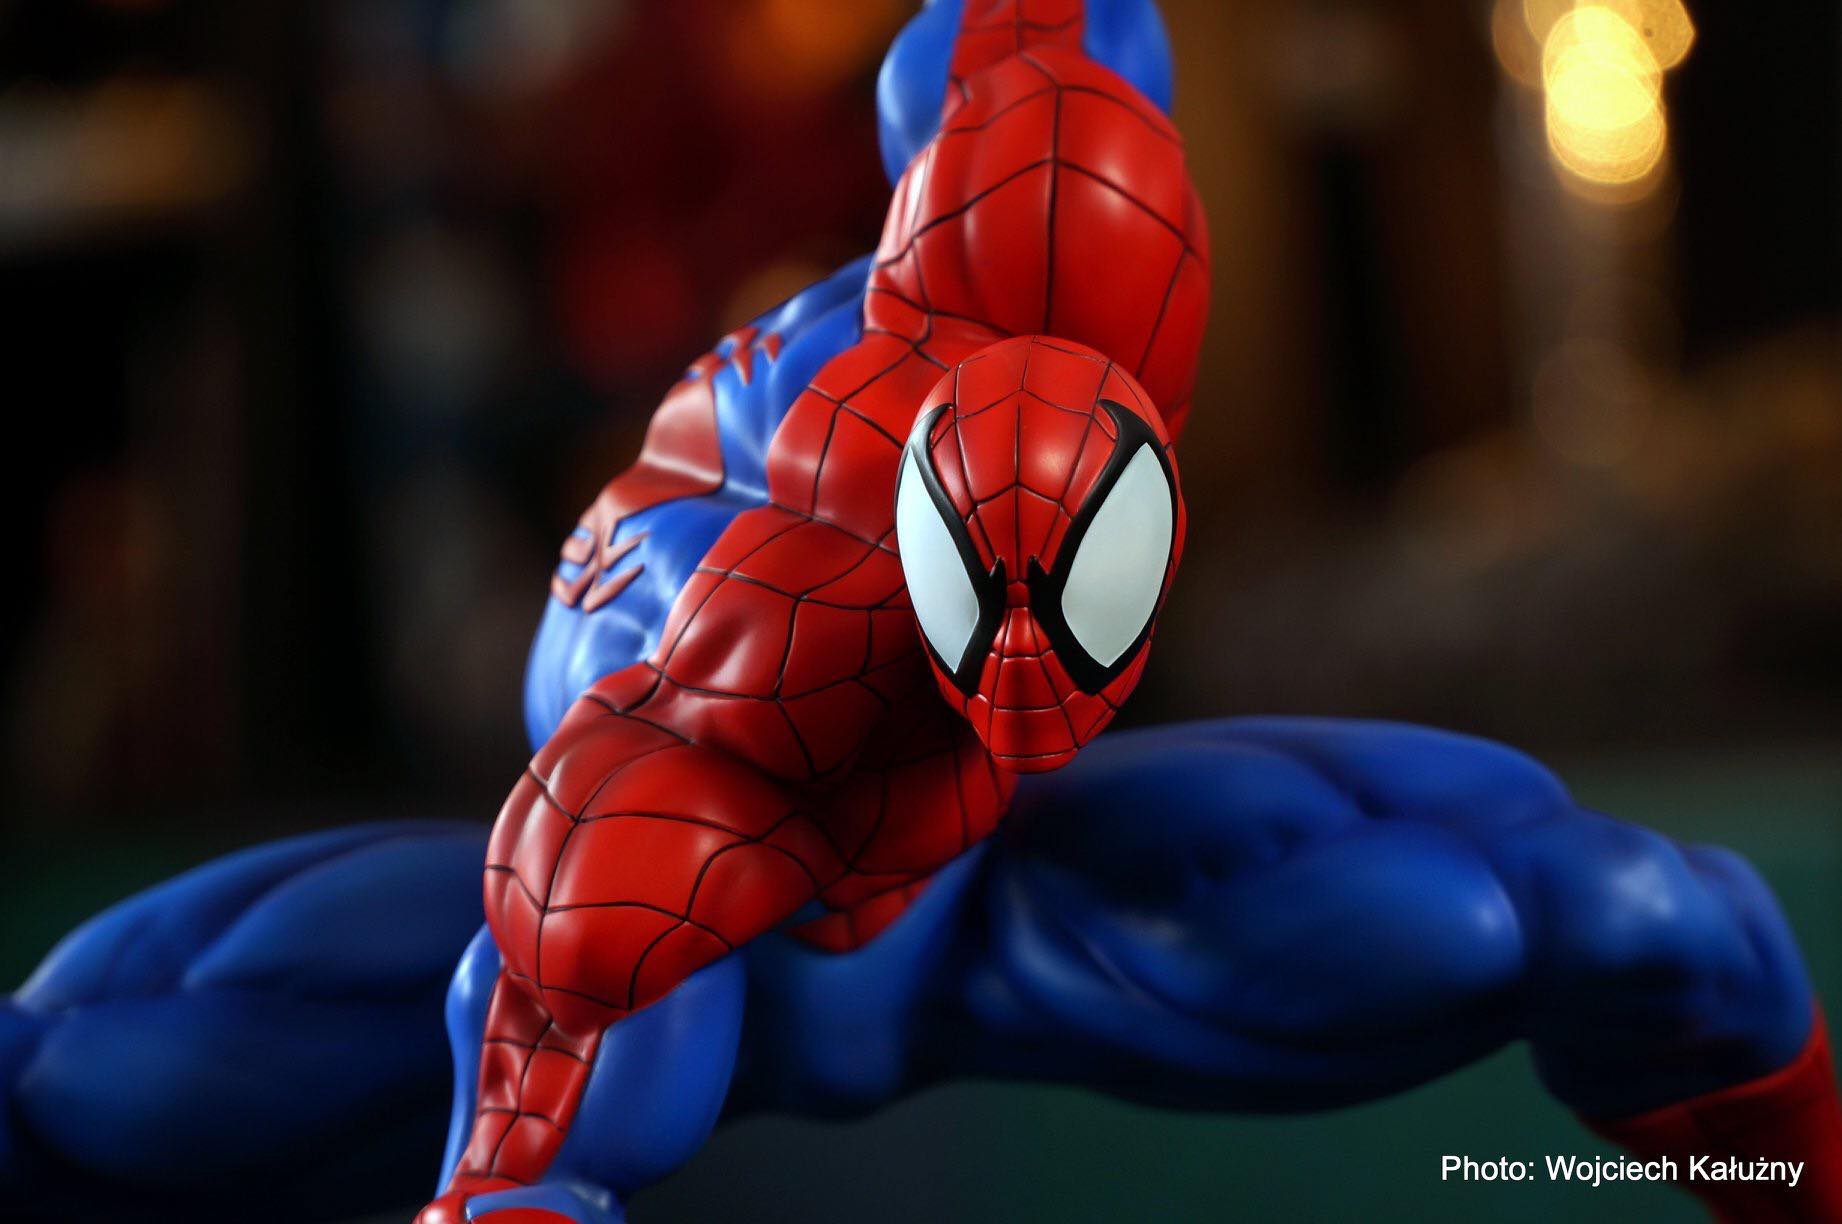 Erick Sosa Marvel Vs Capcom Spider-man Homem Aranha 1/4 scale Custom Statue  - Movie Freaks Collectibles